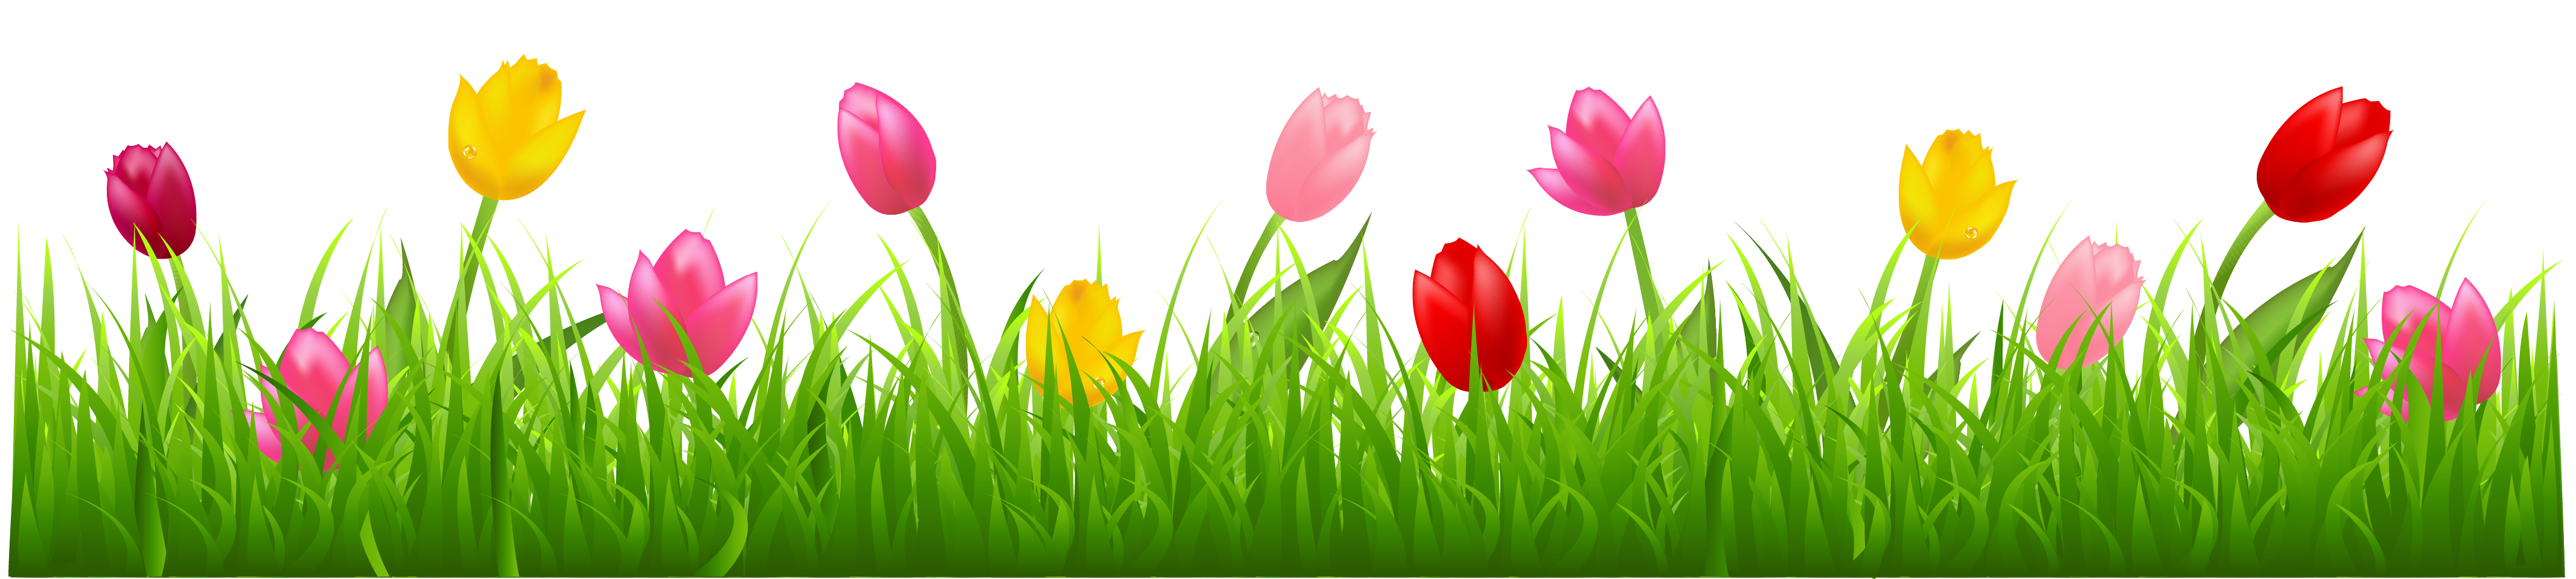 Ground clipart clear background grass. With colorful tulips png